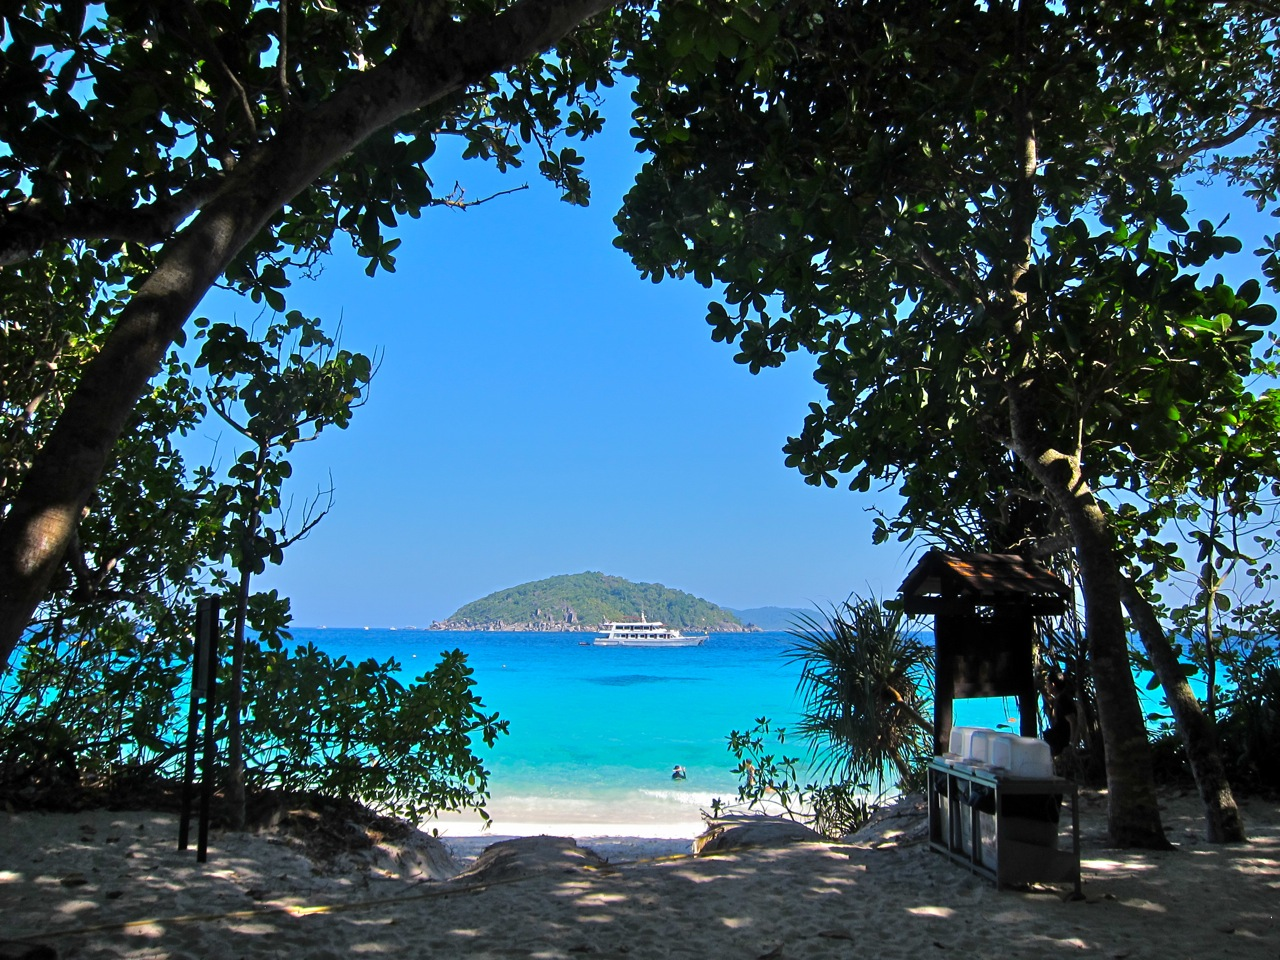 Similan Islands - Camping Destinations in Thailand